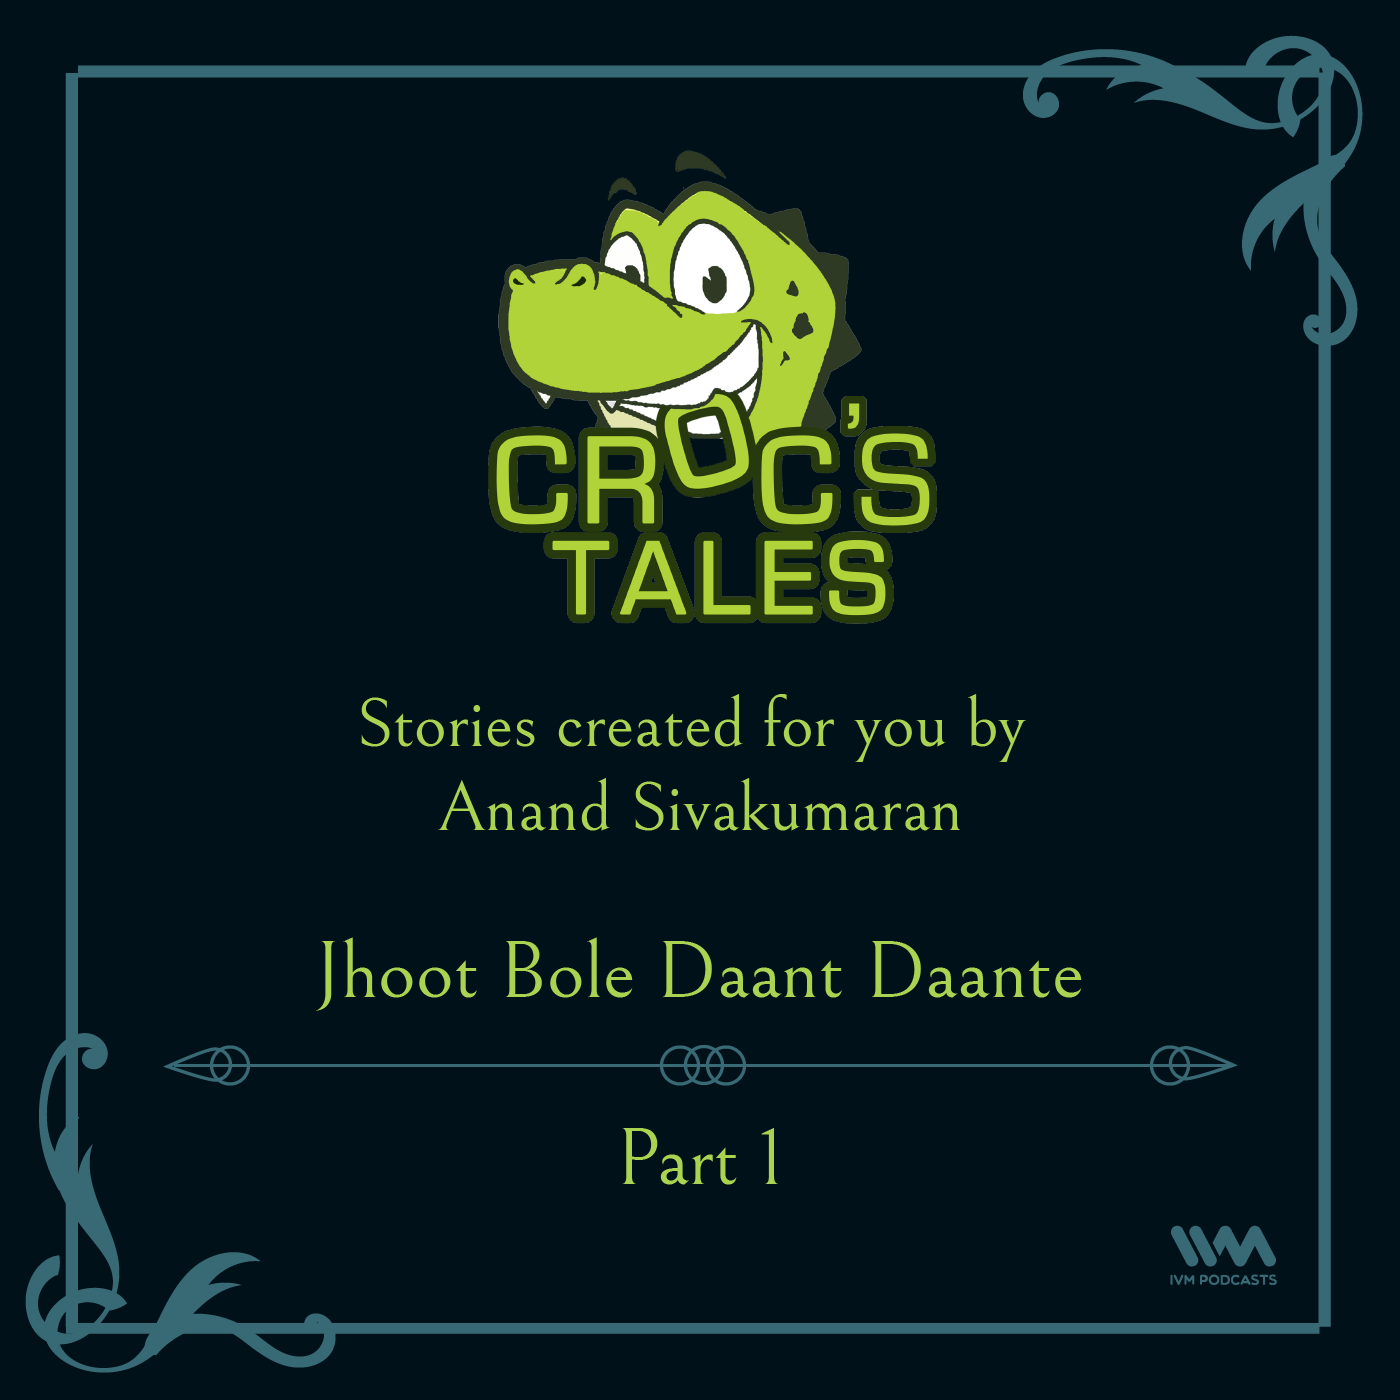 Ep. 86: Jhoot Bole Daant Daante (Part 1)